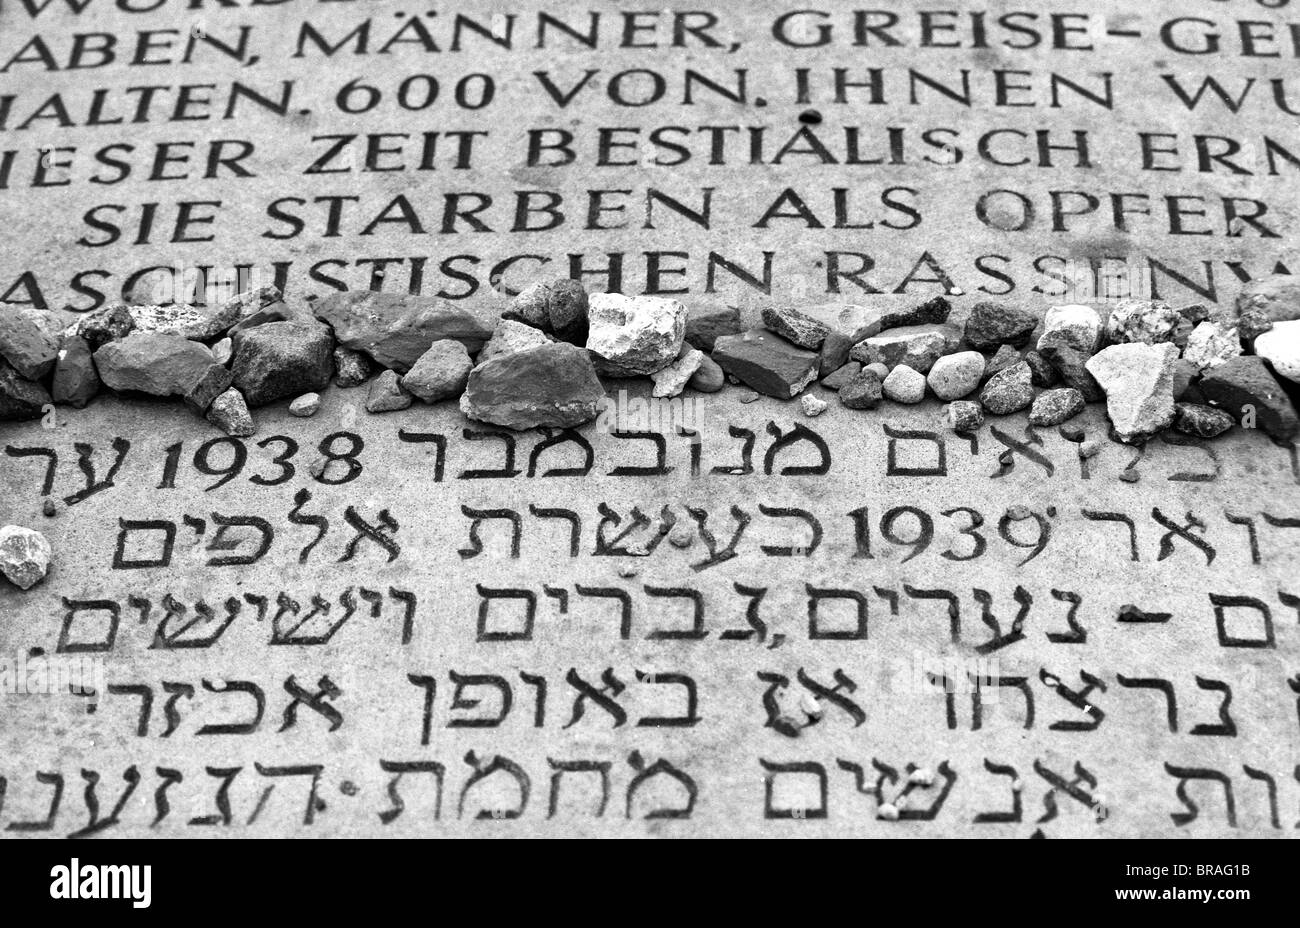 Part of a memorial in German and Hebrew at the Buchenwald concentration camp in Germany, near Weimar in the state - Stock Image